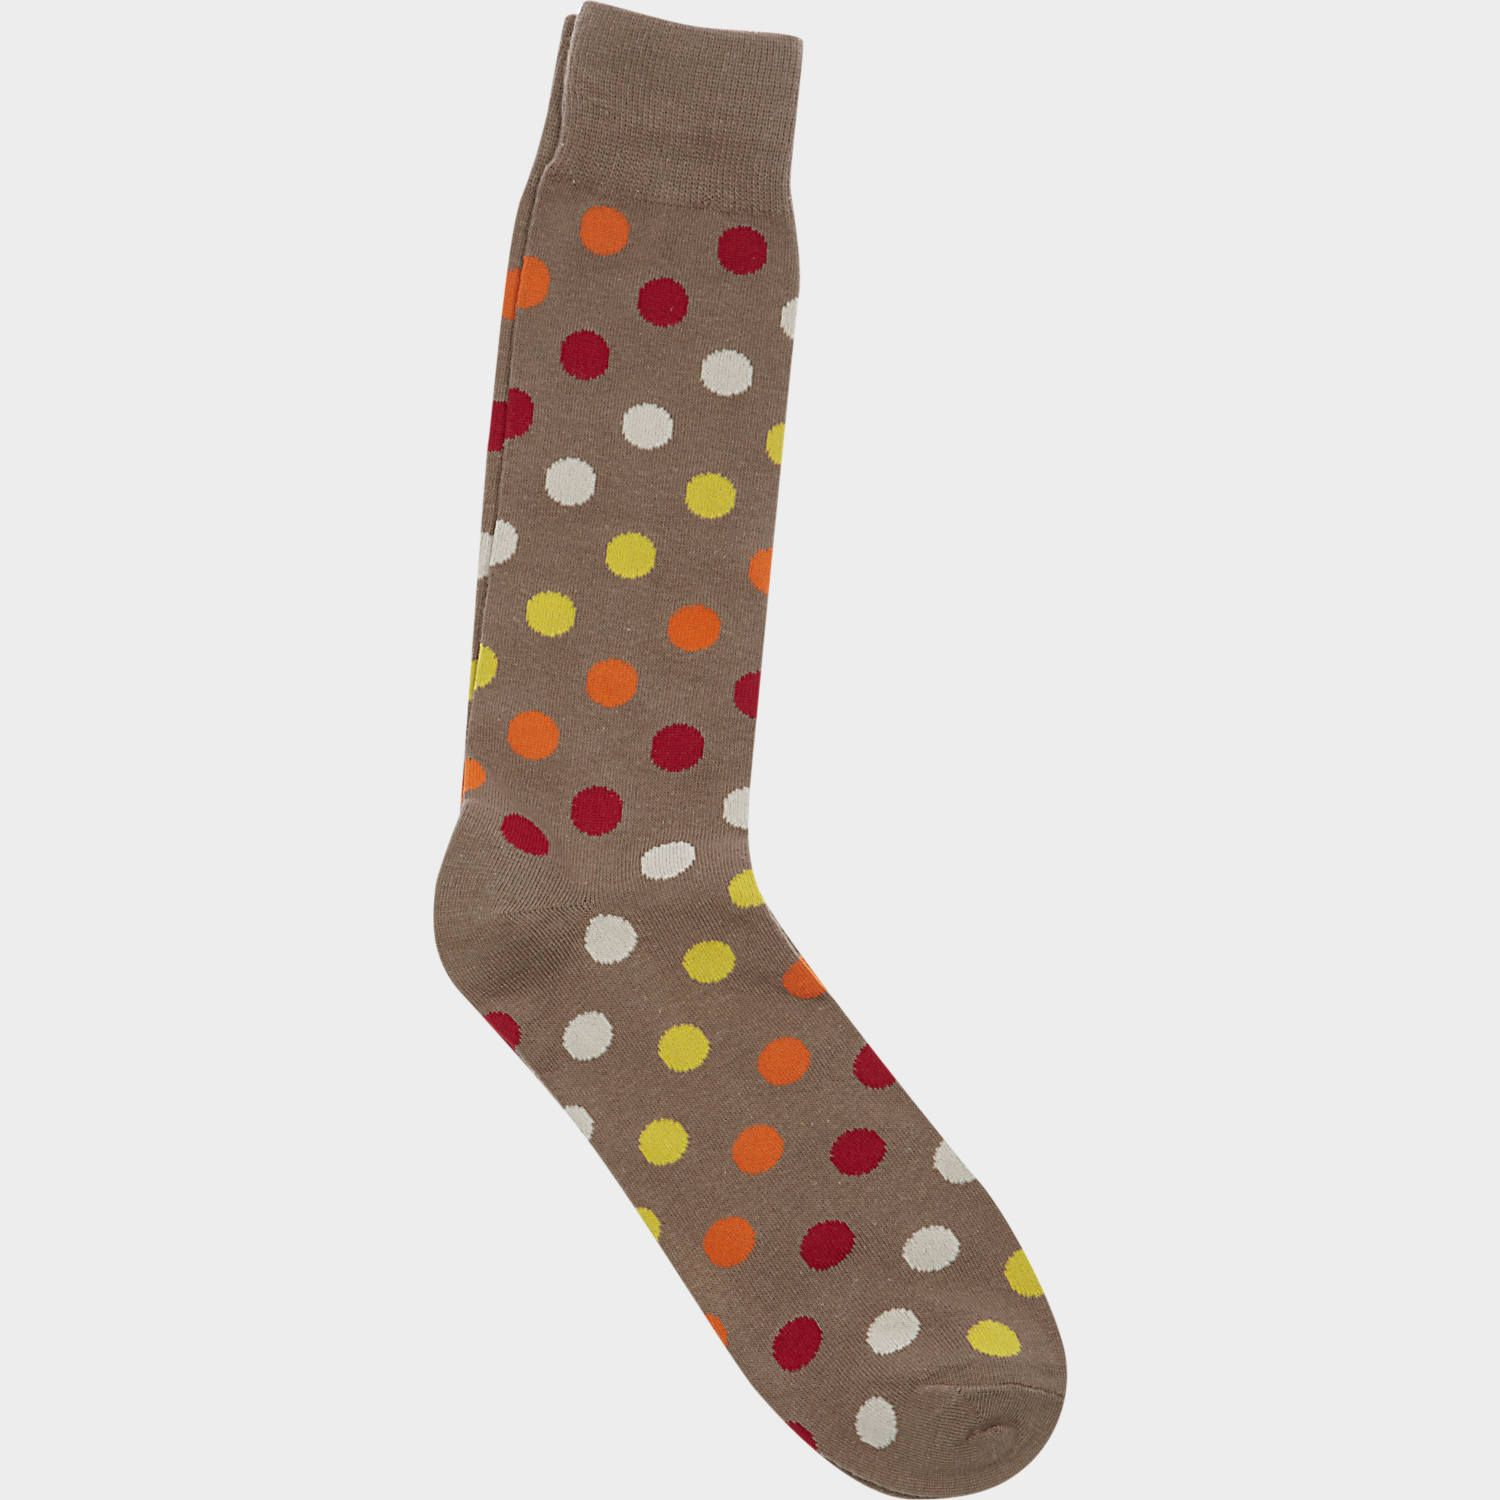 These Are Some Sweet Socks From Men S Wearhouse They Have Lots